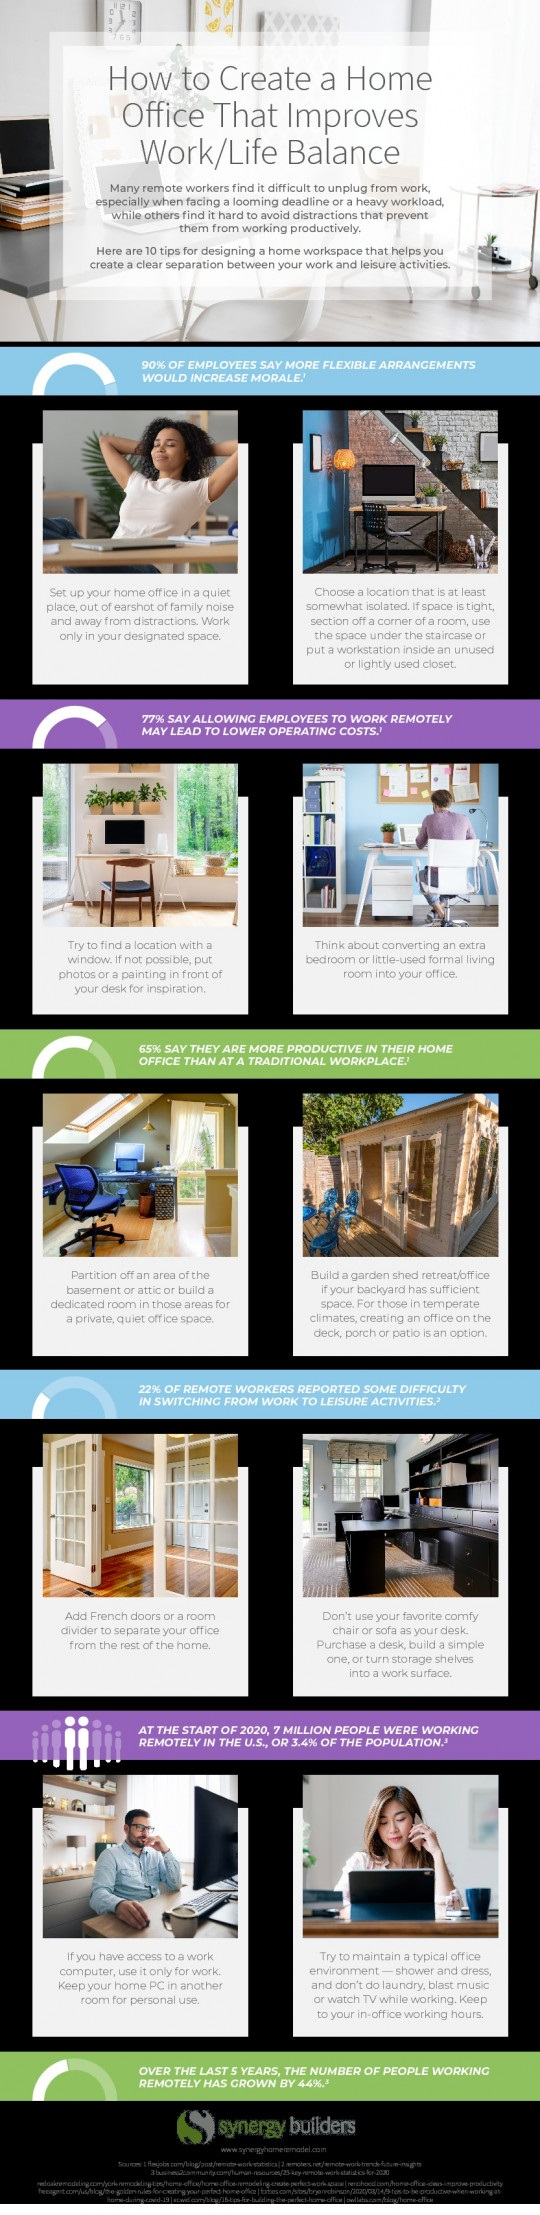 How to Create a Home Office That Improves Work Life Balance infographic